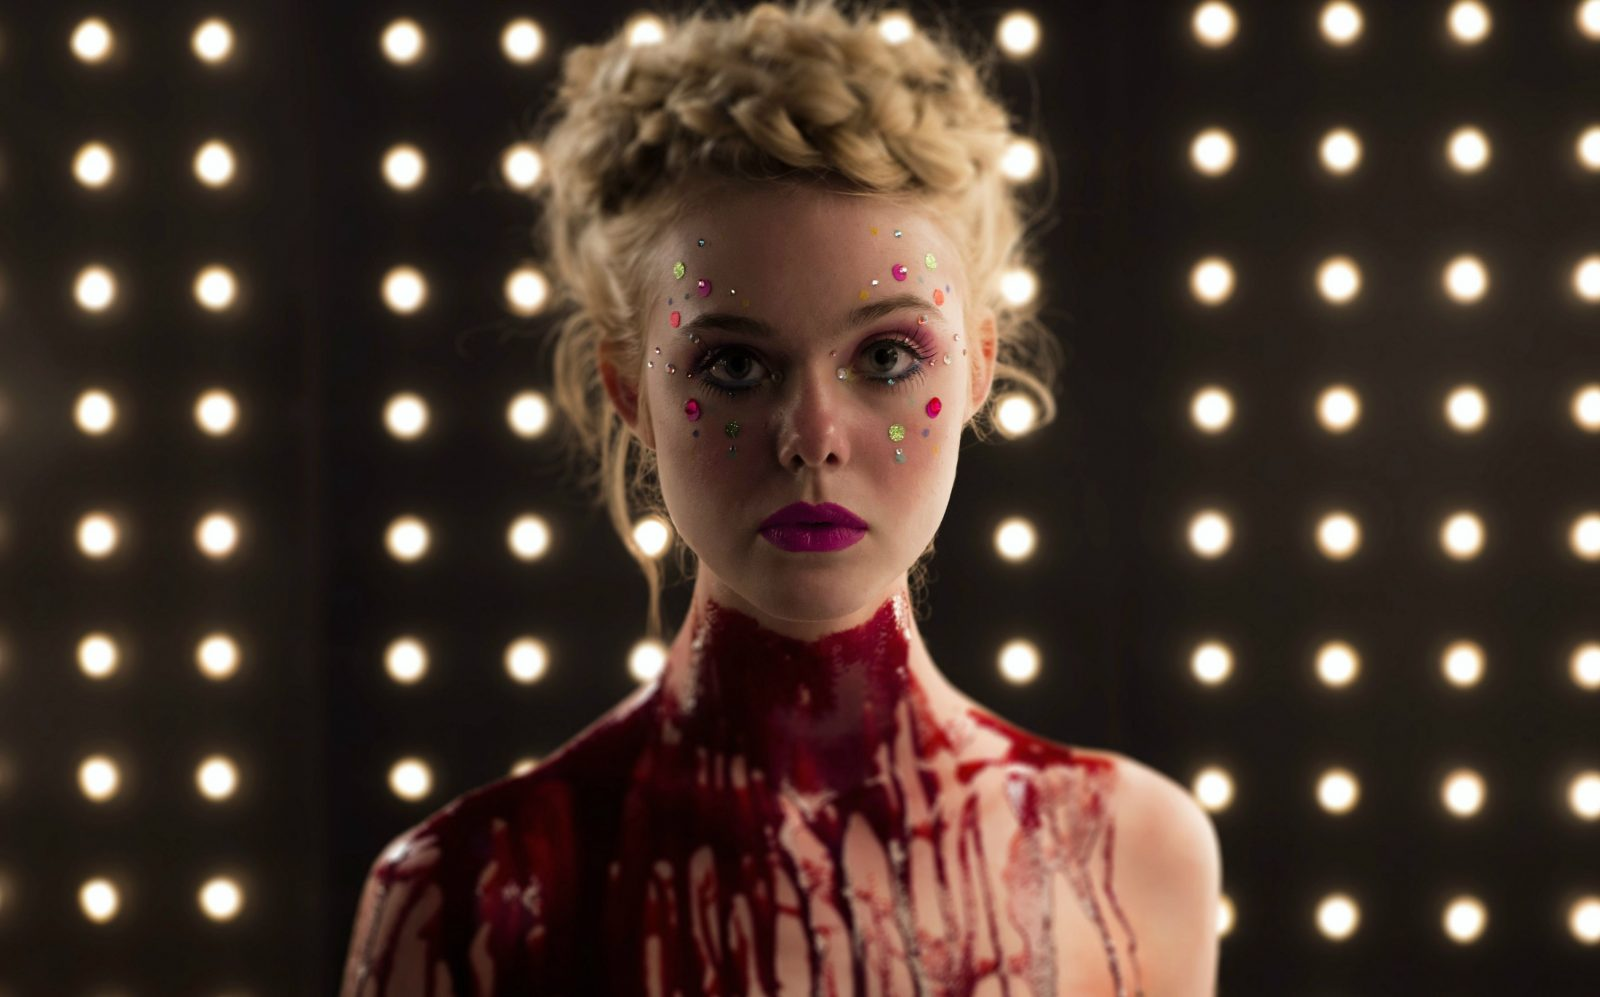 the-neon-demon-s-bloody-glamour-didn-t-please-critics-at-cannes-the-neon-demon-amaz-983999